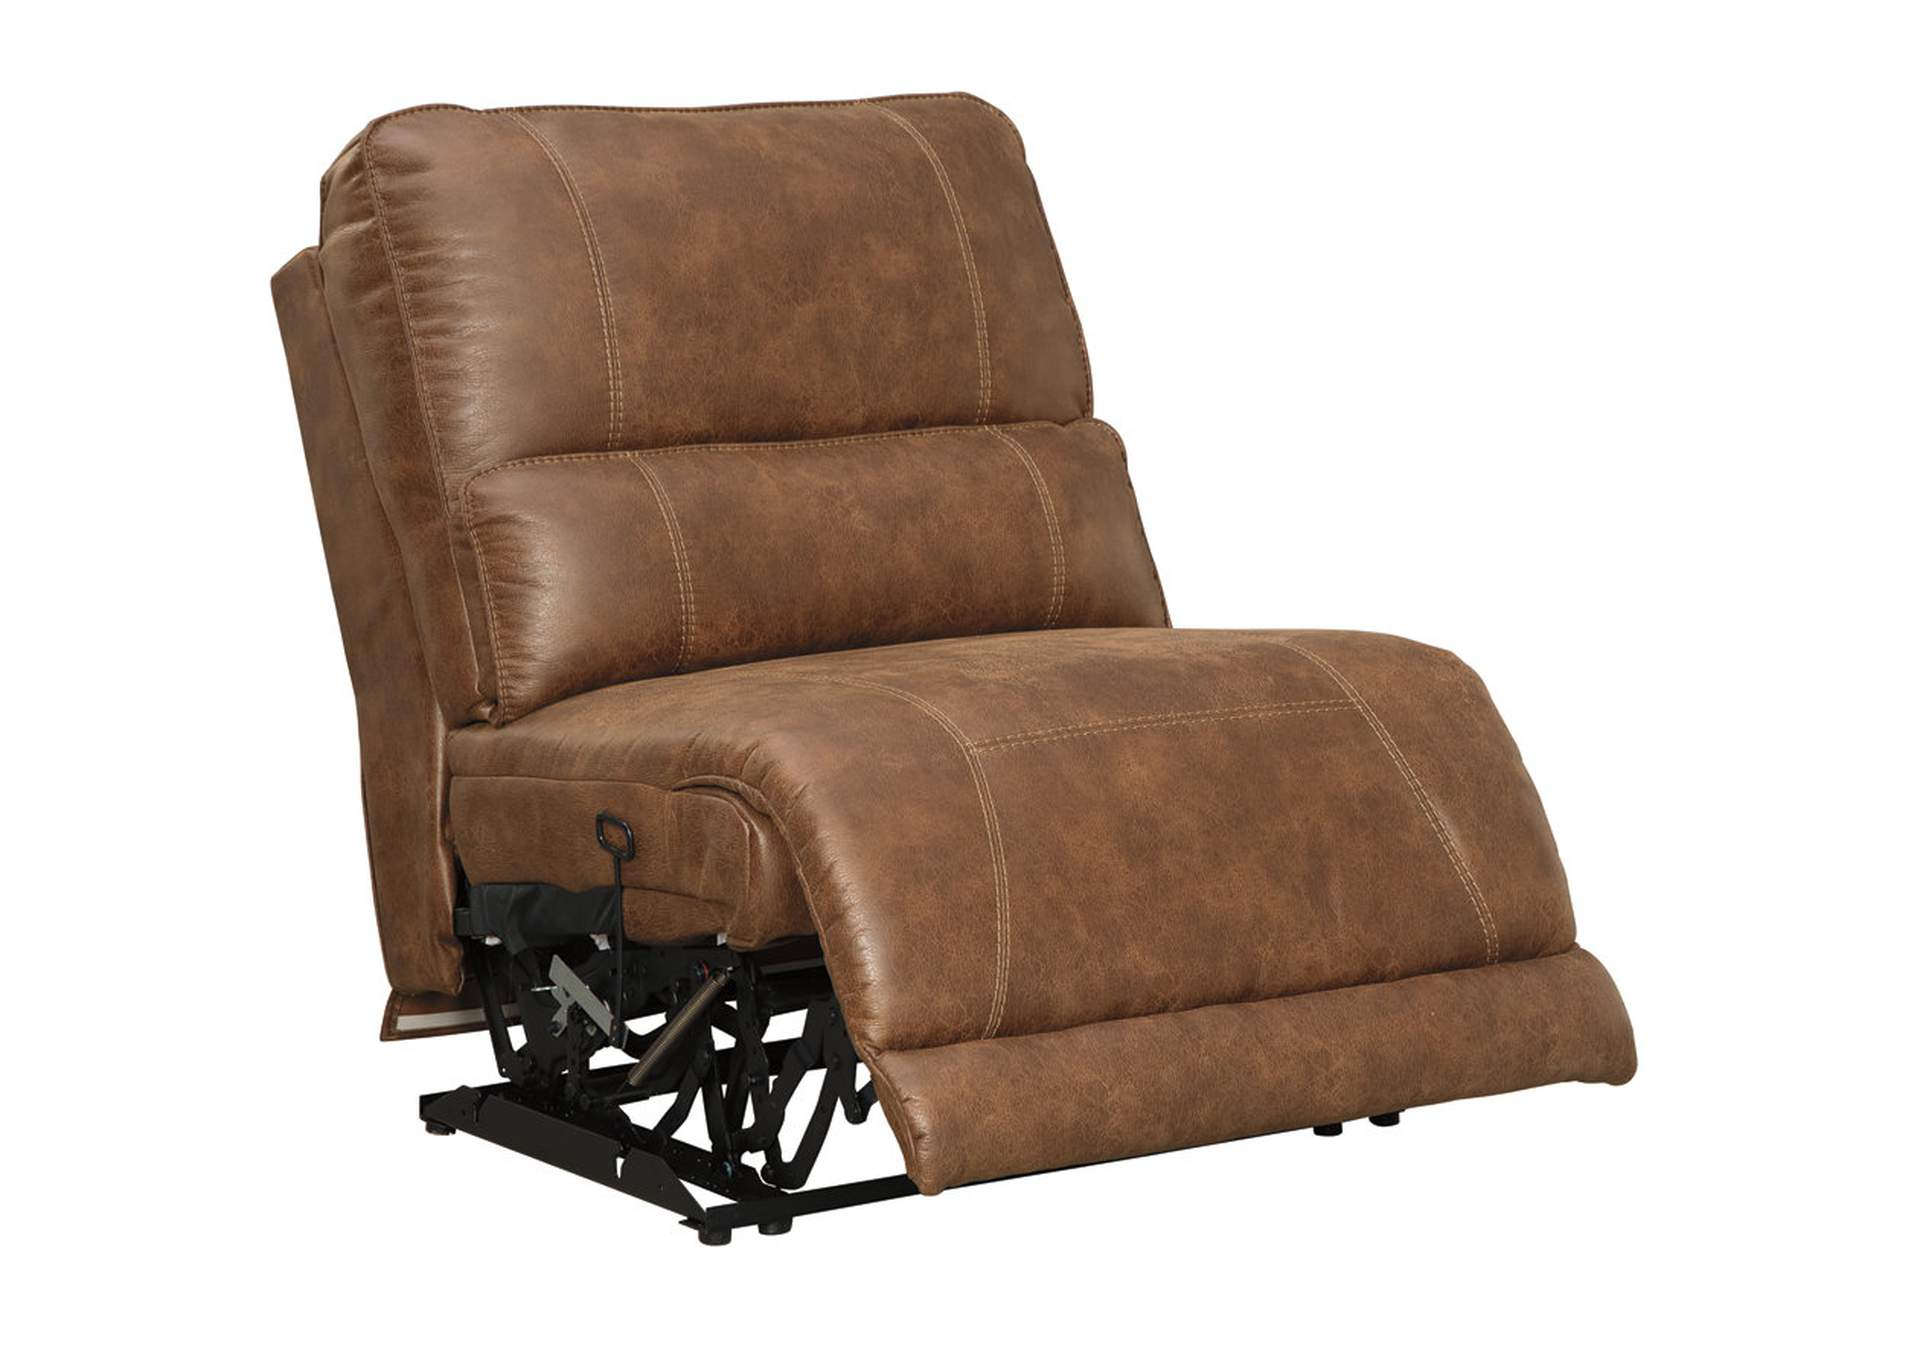 Thurles Armless Recliner,Signature Design By Ashley